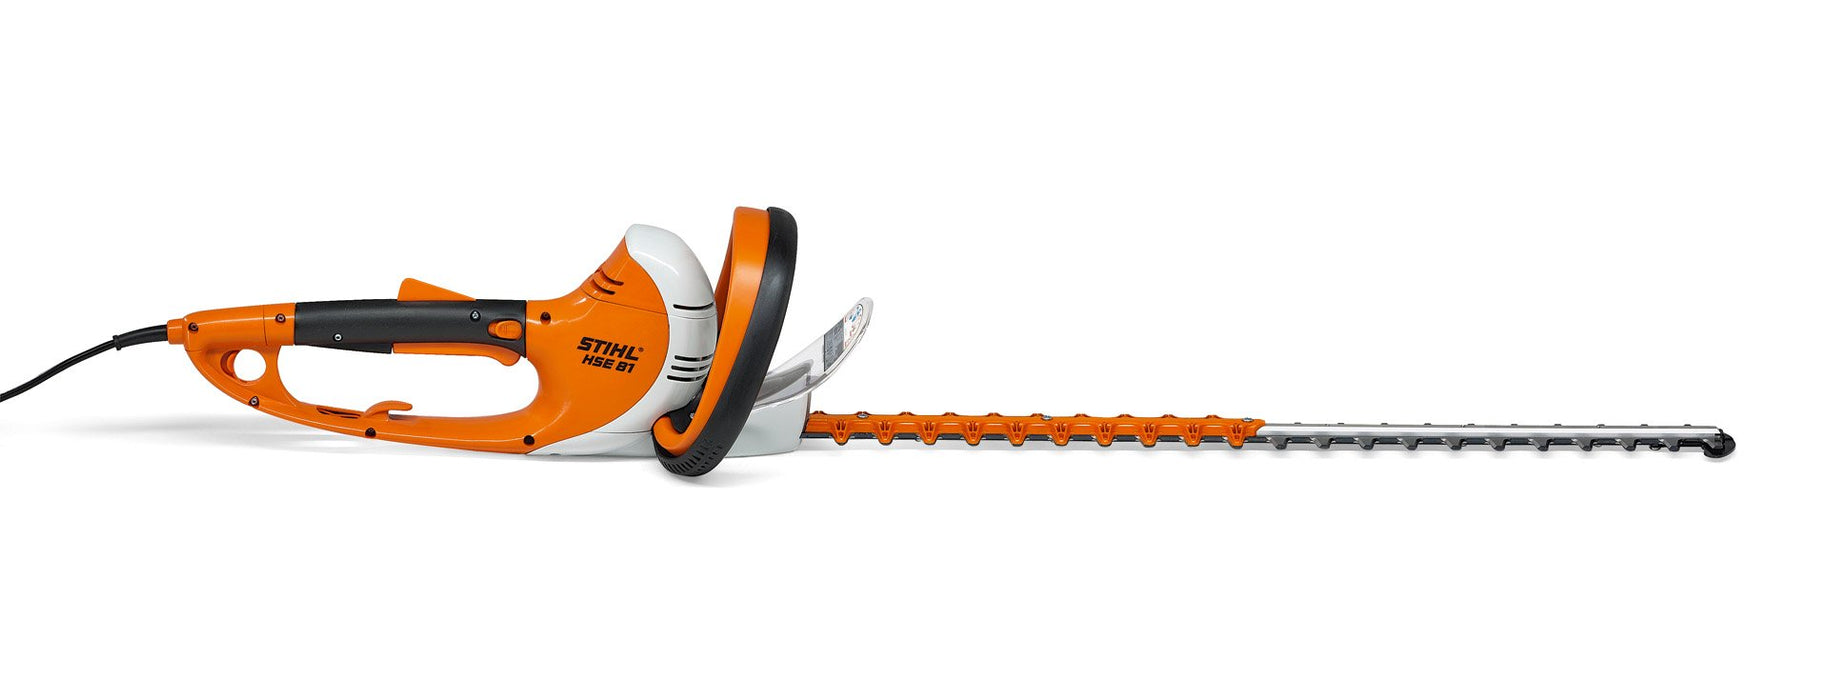 Stihl HSE 81 Electric Hedge Trimmer